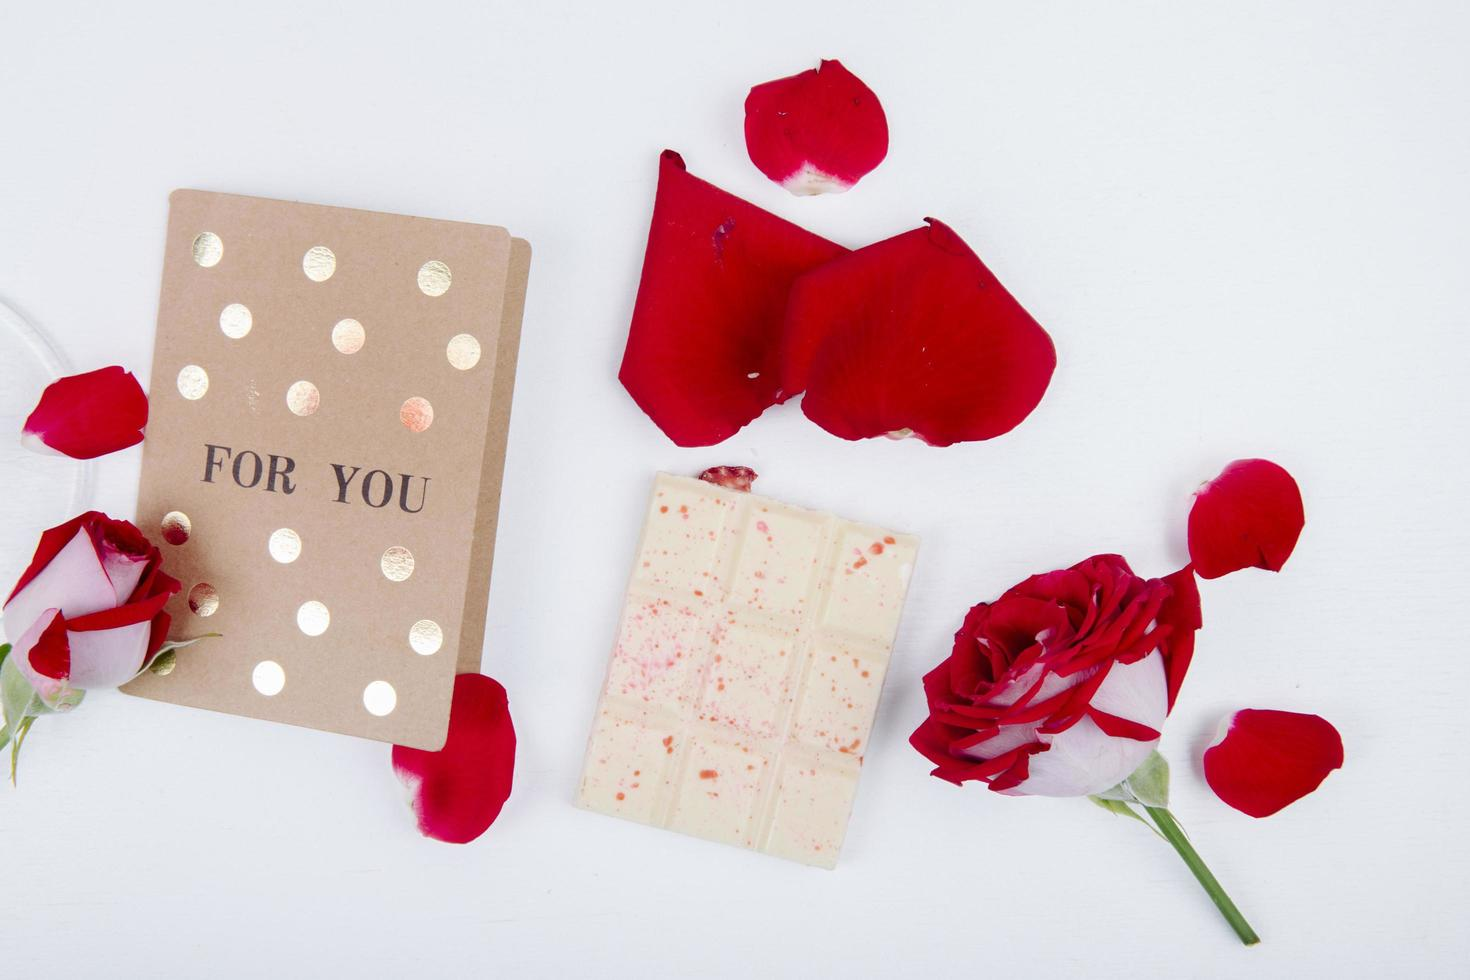 Valentine's day gifts on a wooden table photo